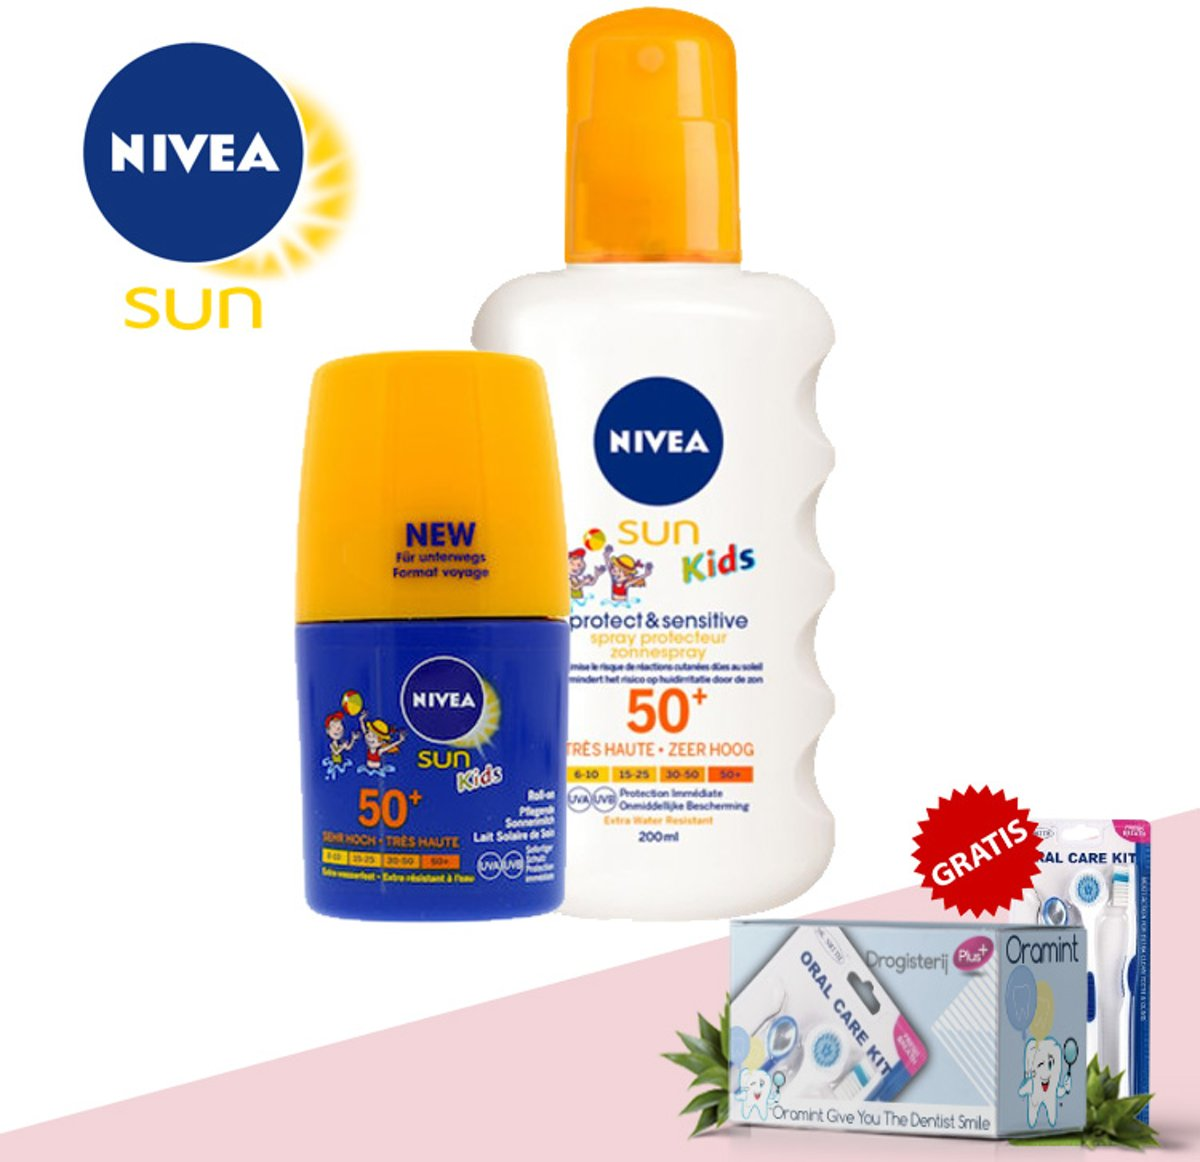 Nivea Sun Kids Protect&Sensitive SPF50+ 200ml en Nivea Sun Kids Protect&Zorg SPF50+ 50ml + Gratis Oramint Oral Care Kit